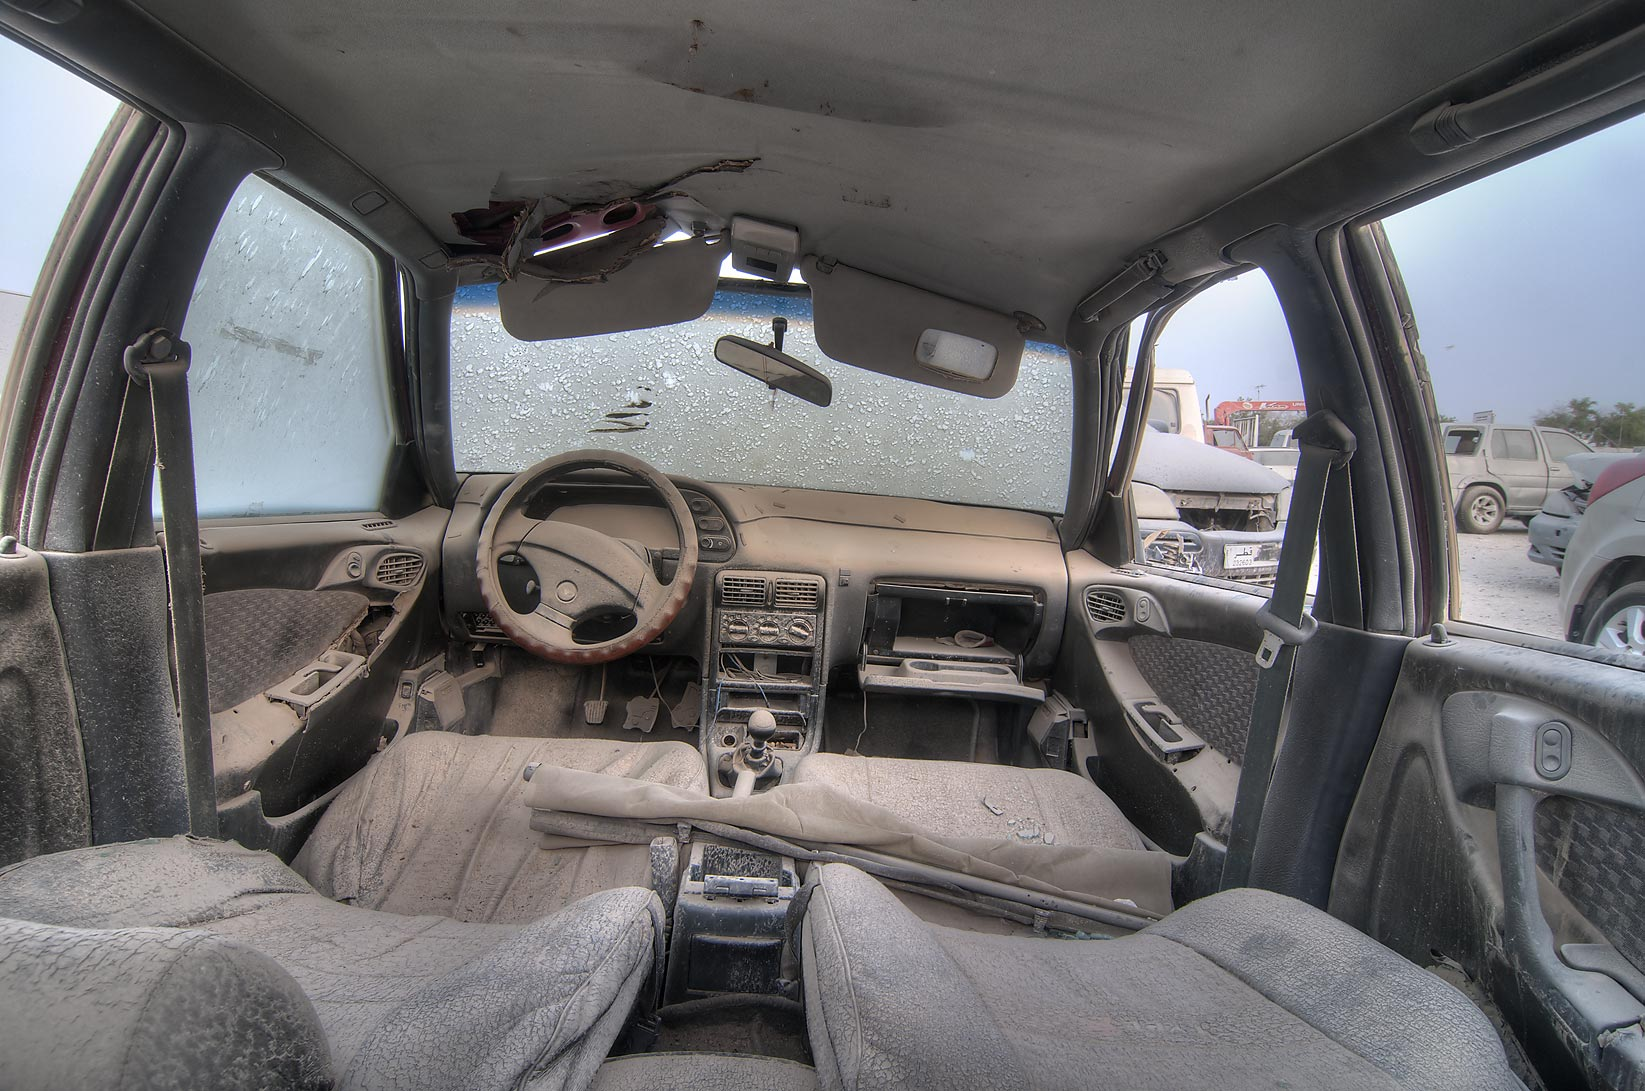 slideshow 1015 26 dusty interior of a car parked near al mamoura division traffic patrol. Black Bedroom Furniture Sets. Home Design Ideas